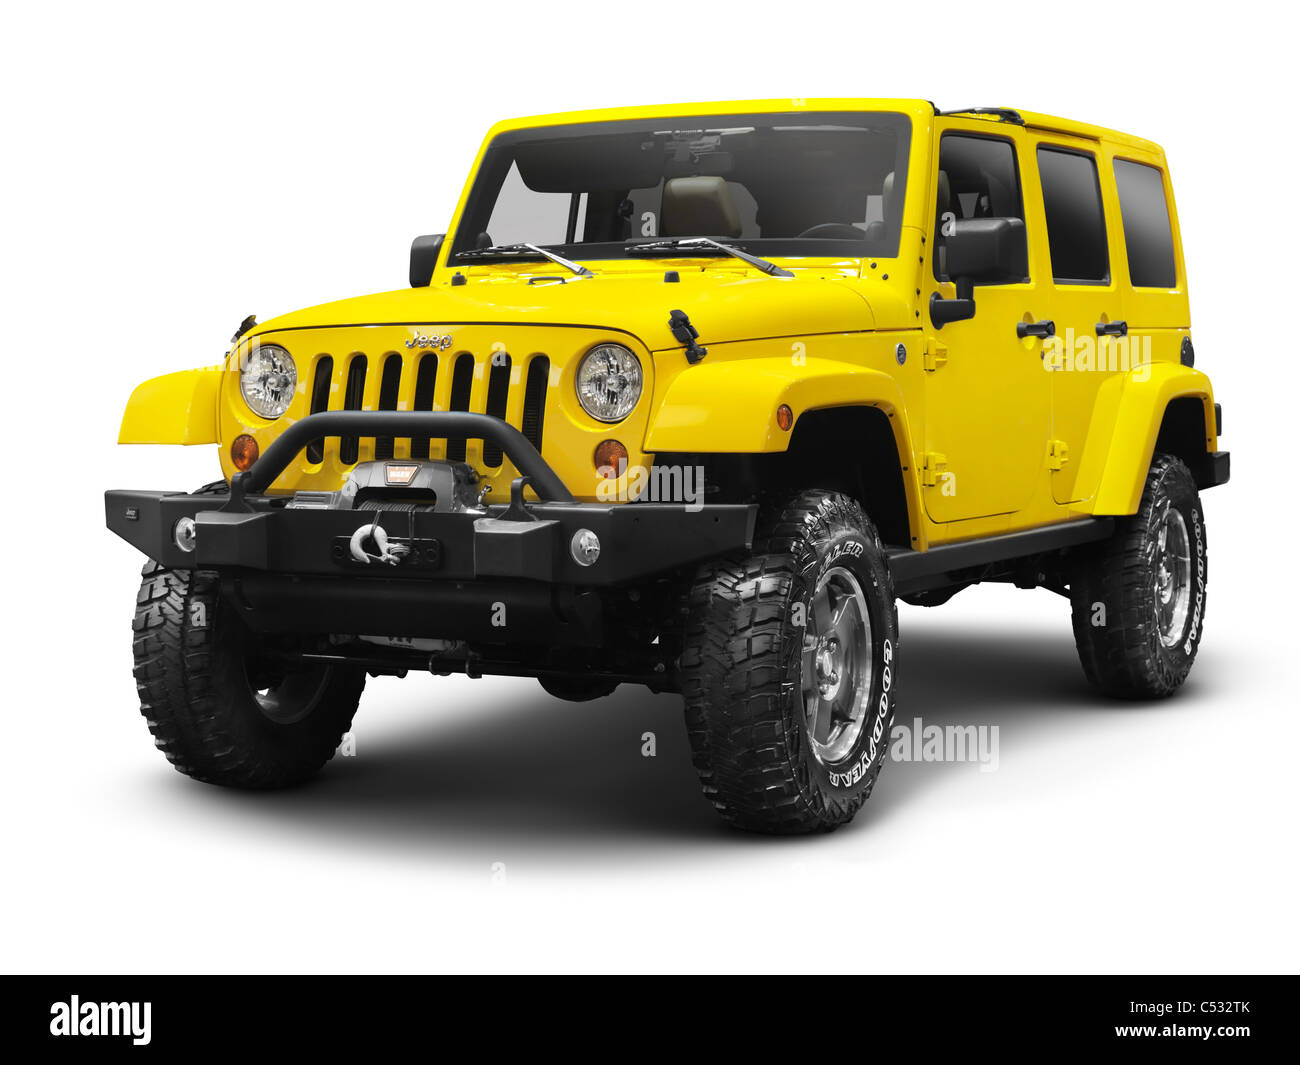 Yellow 2011 Jeep Wrangler Unlimited Sahara 4x4 SUV isolated on white background with clipping path - Stock Image